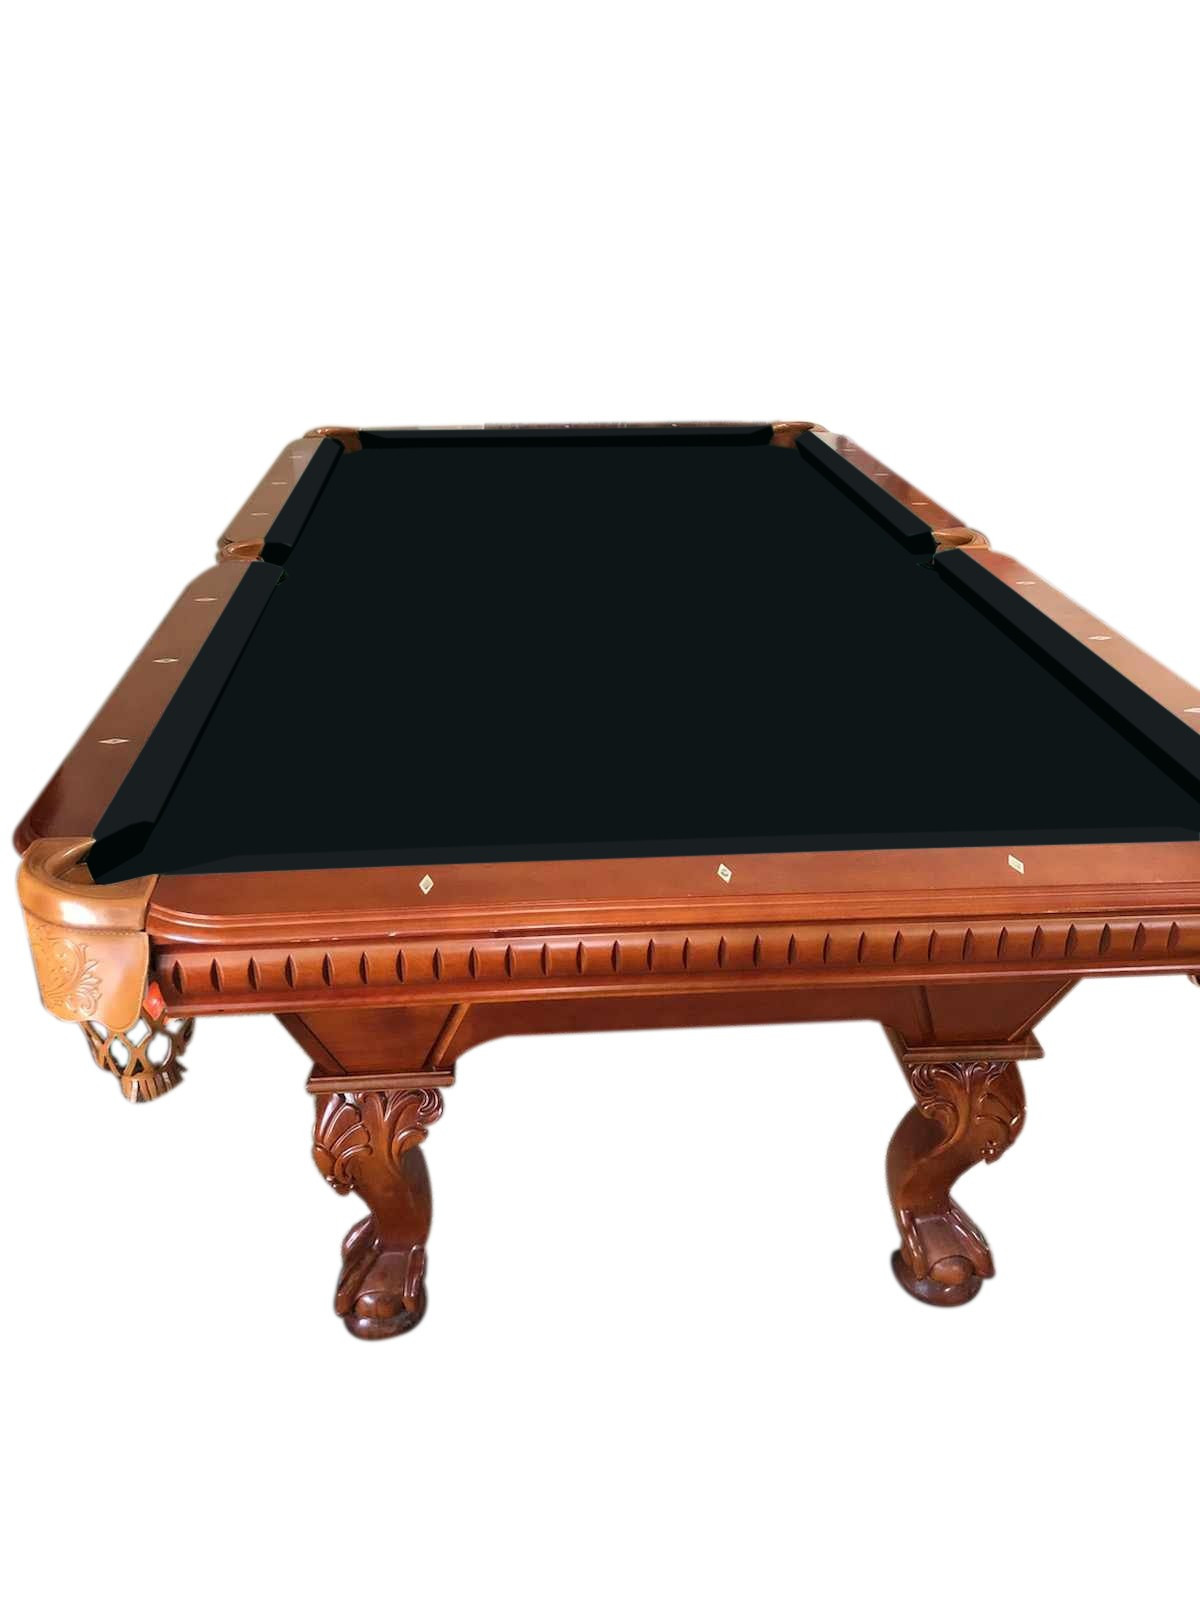 Pool Tables Preowned Used Billiard Tables Great Prices